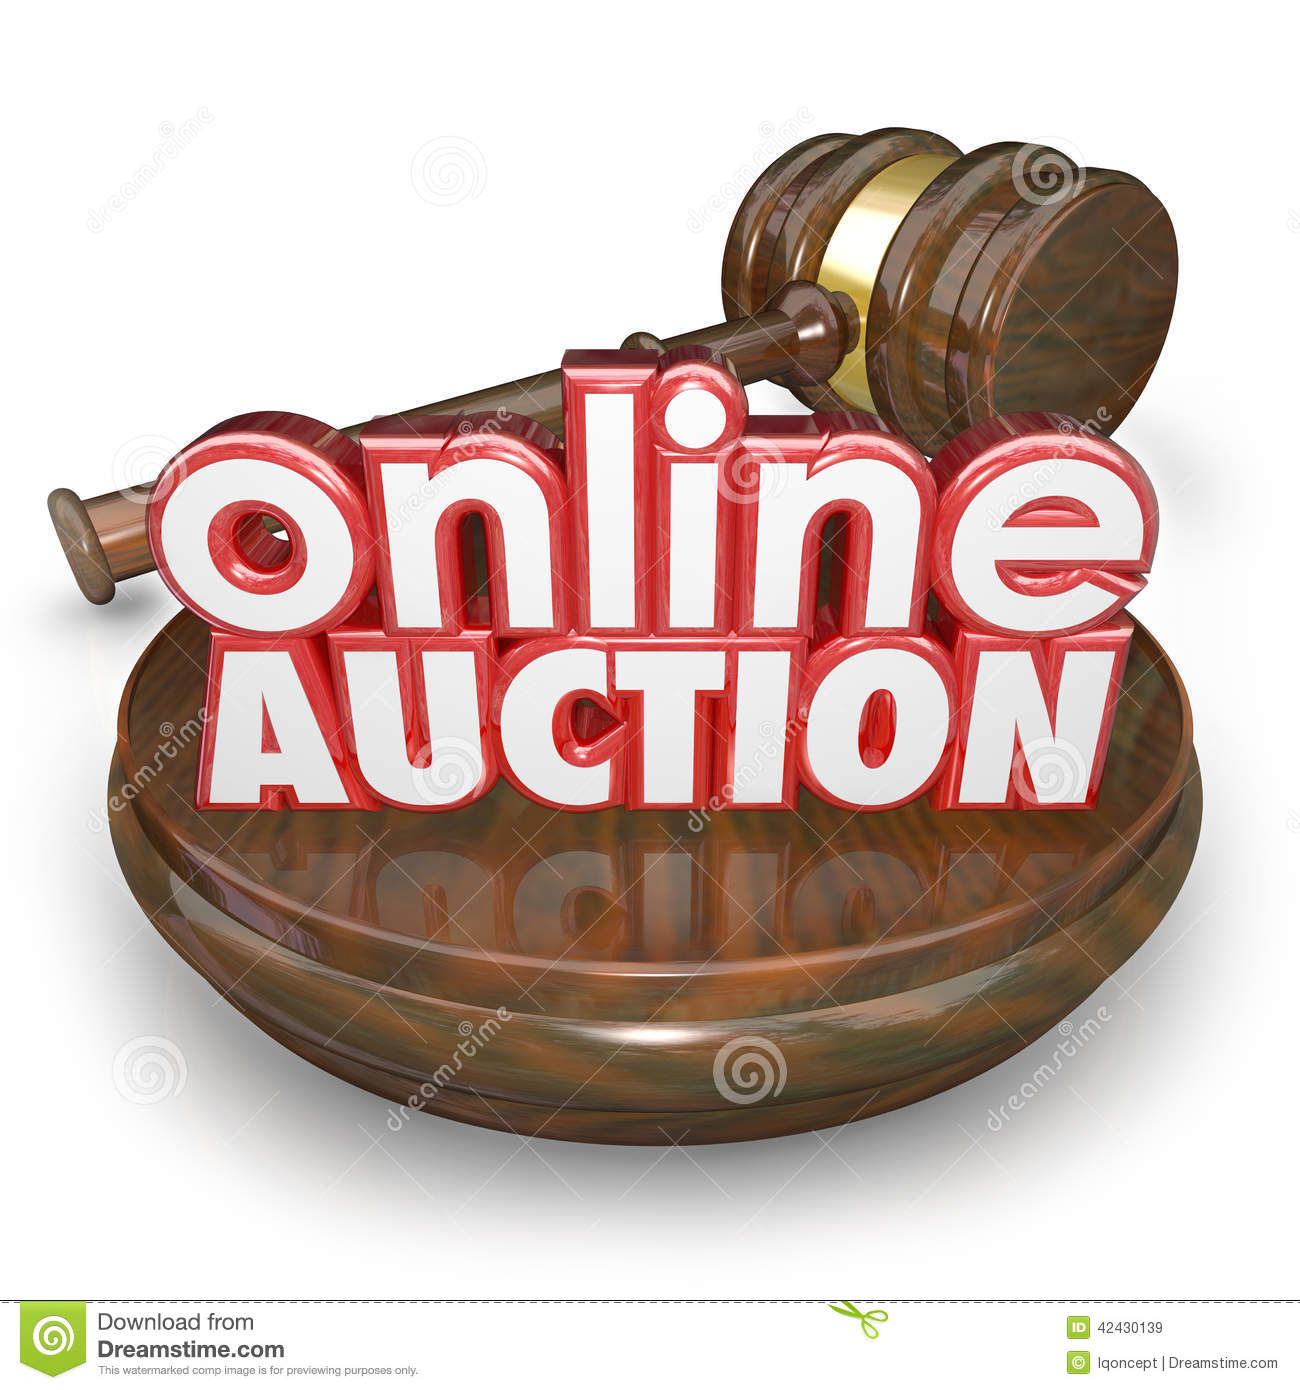 Forthcoming Auctions!